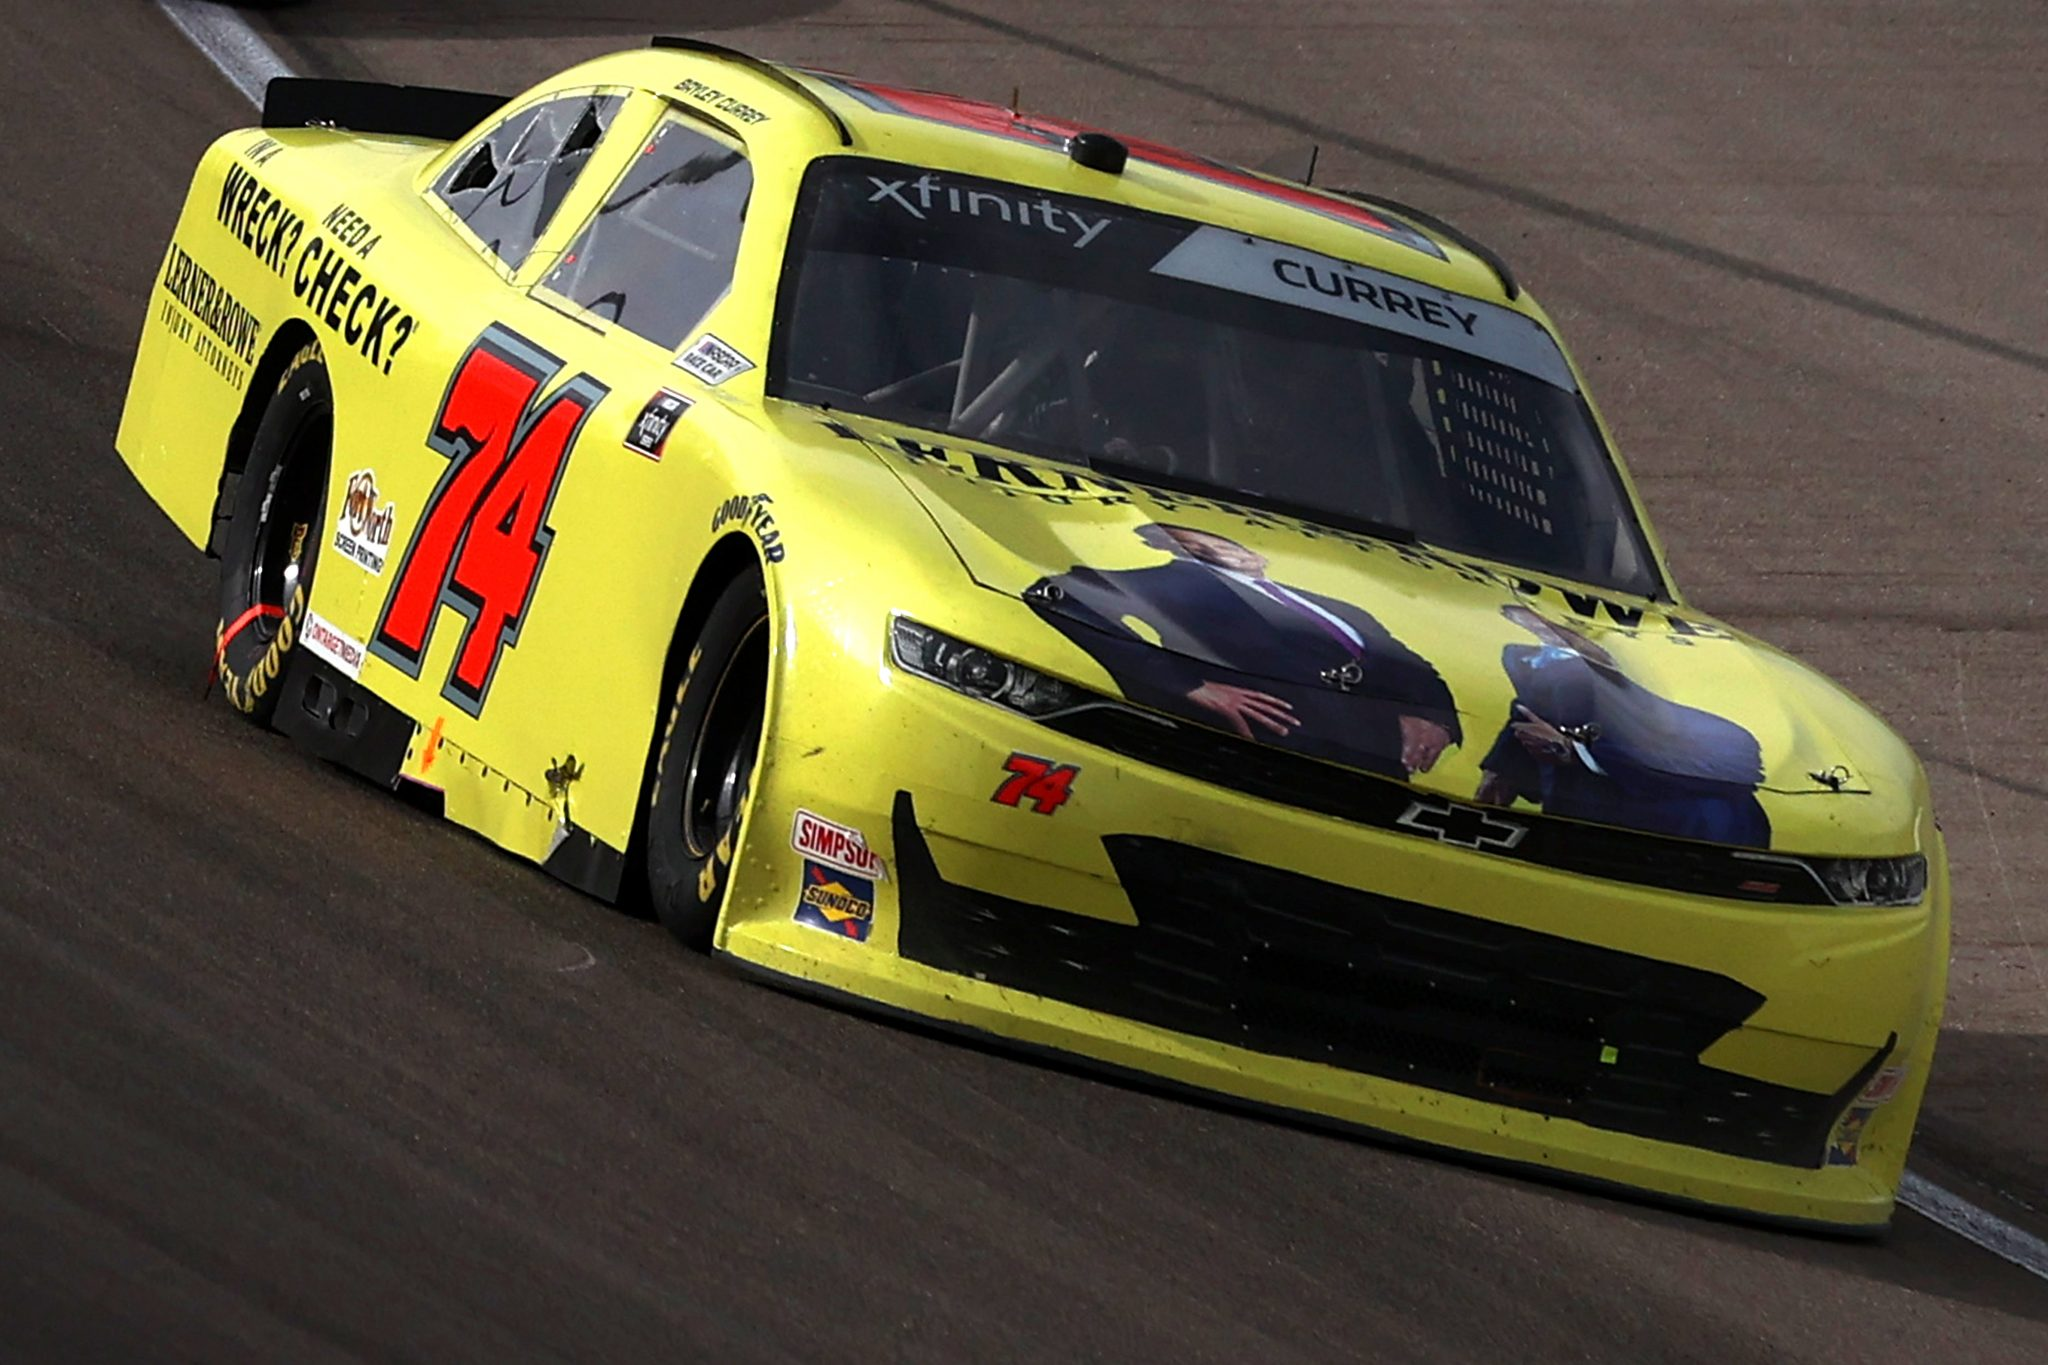 LAS VEGAS, NEVADA - MARCH 06: Bayley Currey, driver of the #74 Lerner & Rowe Chevrolet, drives during the NASCAR Xfinity Series Alsco Uniforms 300 at The Bullring at Las Vegas Motor Speedway on March 06, 2021 in Las Vegas, Nevada. (Photo by Abbie Parr/Getty Images) | Getty Images